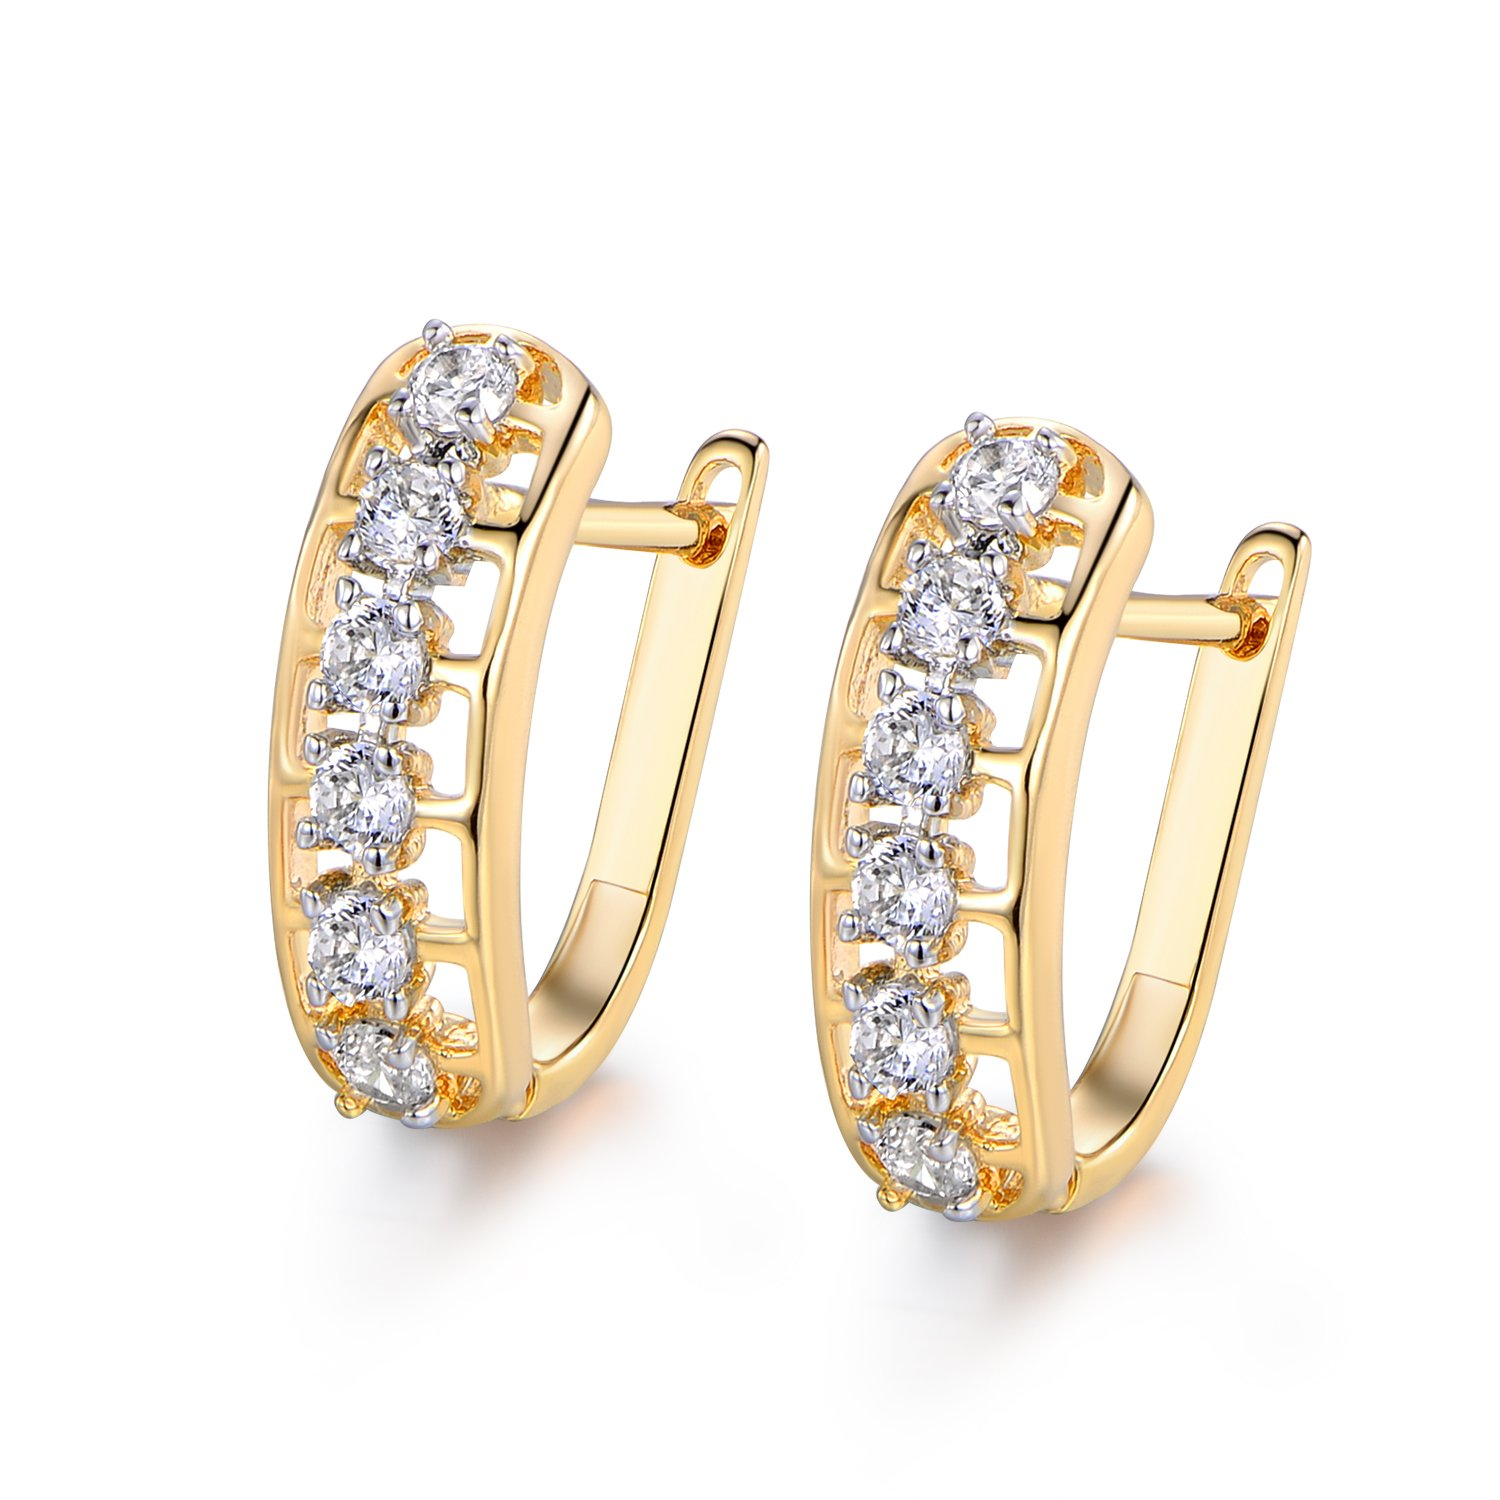 MASOP Round Huggie Hoop Earrings With 6 Crystal Cubic Zirconia Gold